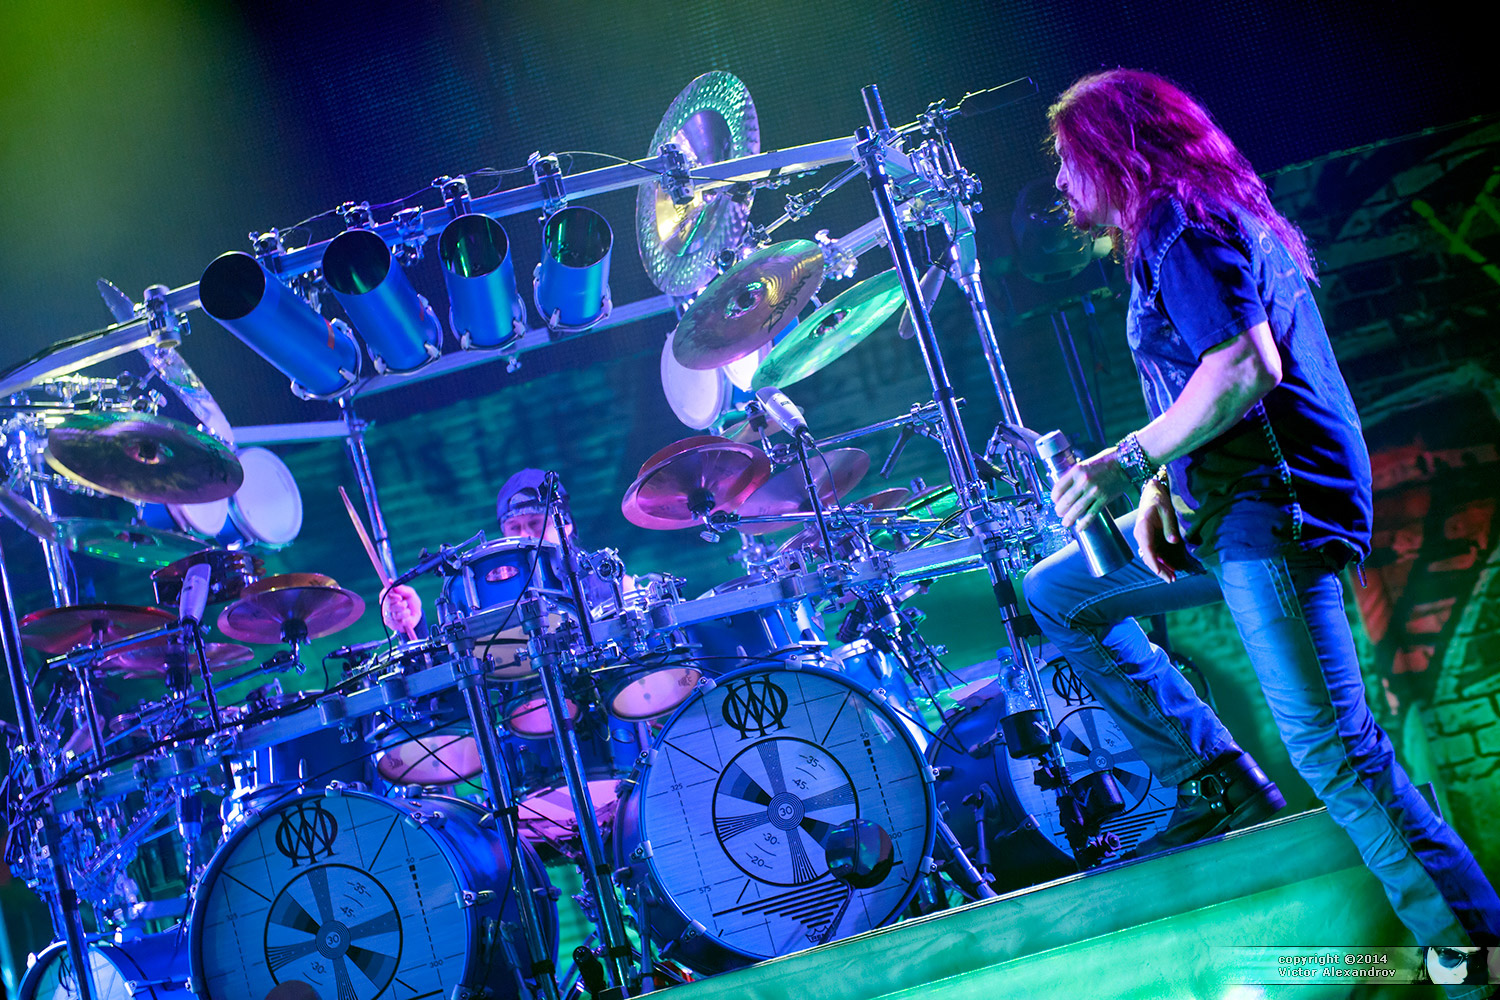 Mike Mangini & James LaBrie